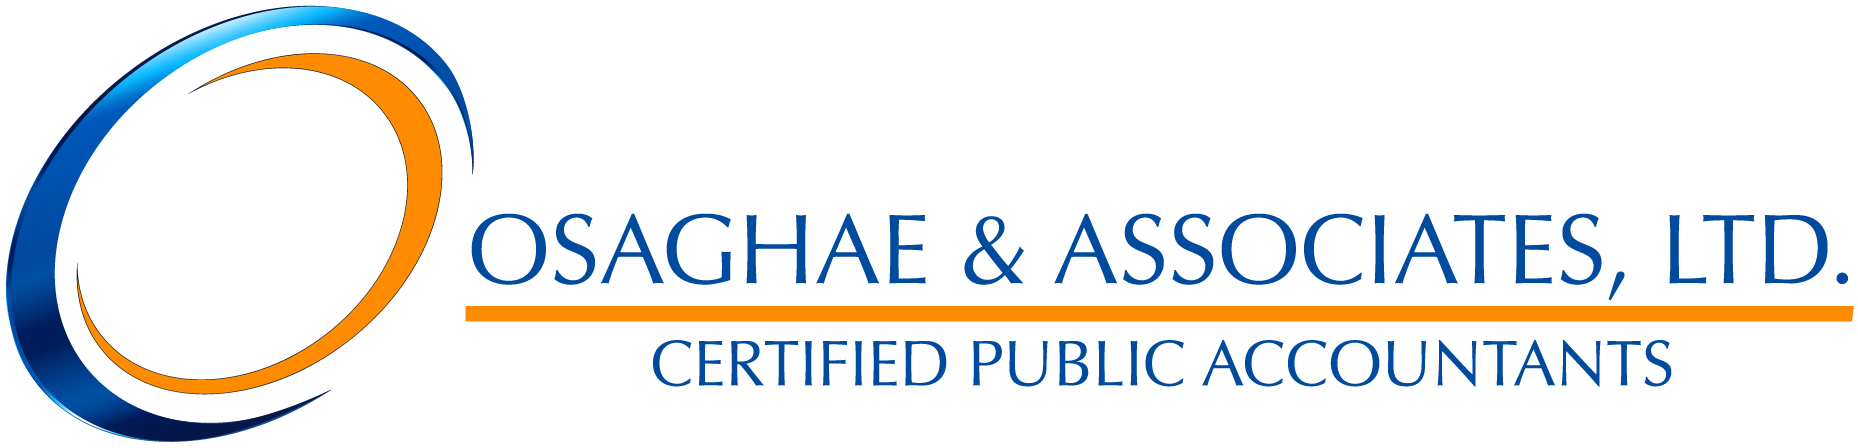 Chicago, Illinois Accounting Firm | Non-Filed Tax Returns Page | Osaghae & Associates, Ltd.